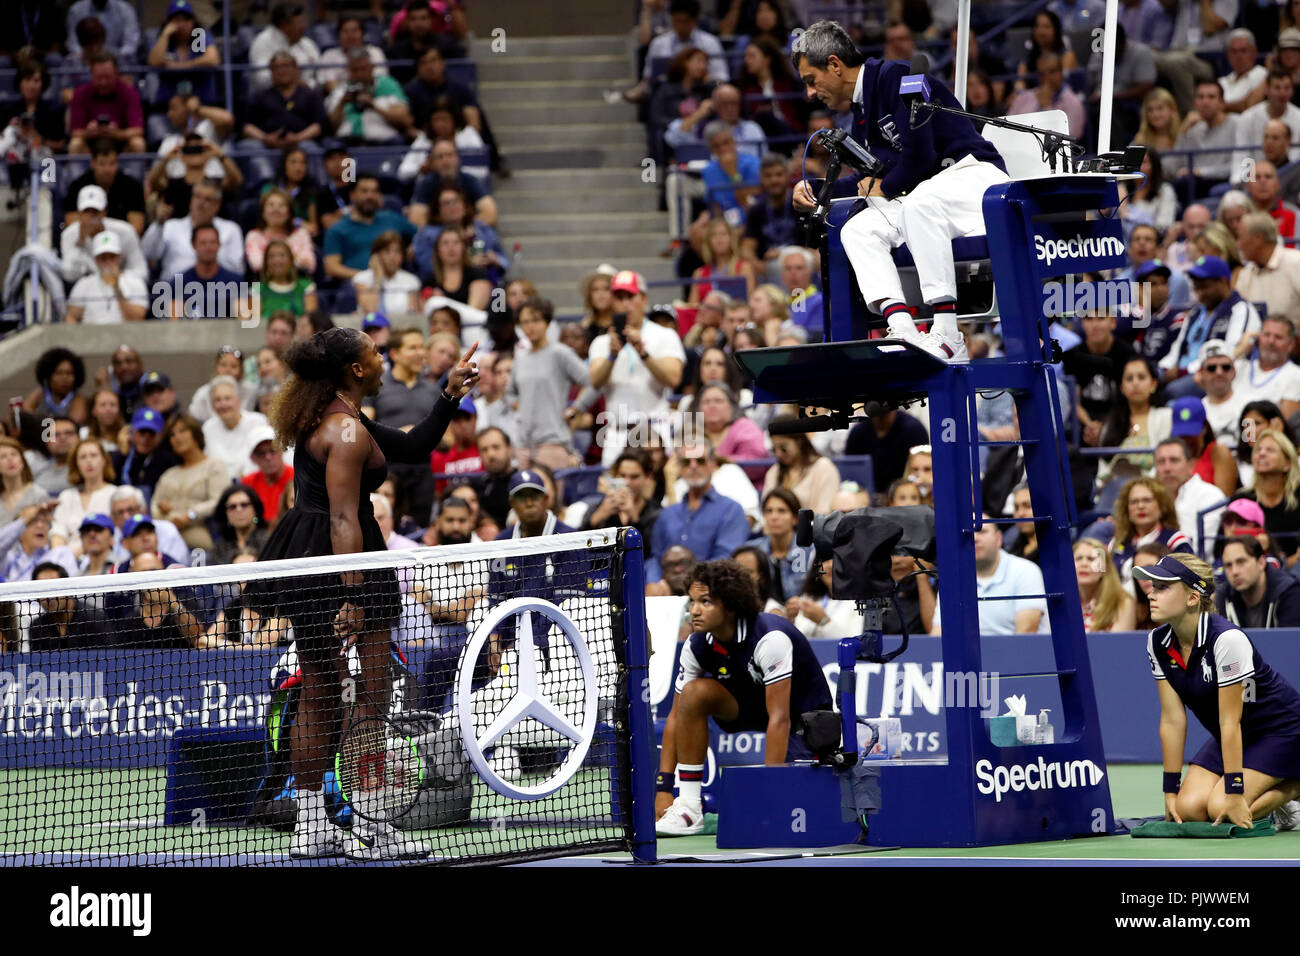 New York, USA. 8th September 2018.  US Open Tennis:   Serena Williams scolds the chair umpire after being penalized a point for smashing her racket. during her loss to Naomi Osaka of Japan in the US Open women's final.   Williams was later penalized a game at 4-3 in the final set, which added controversy to the match. Credit: Adam Stoltman/Alamy Live News - Stock Image